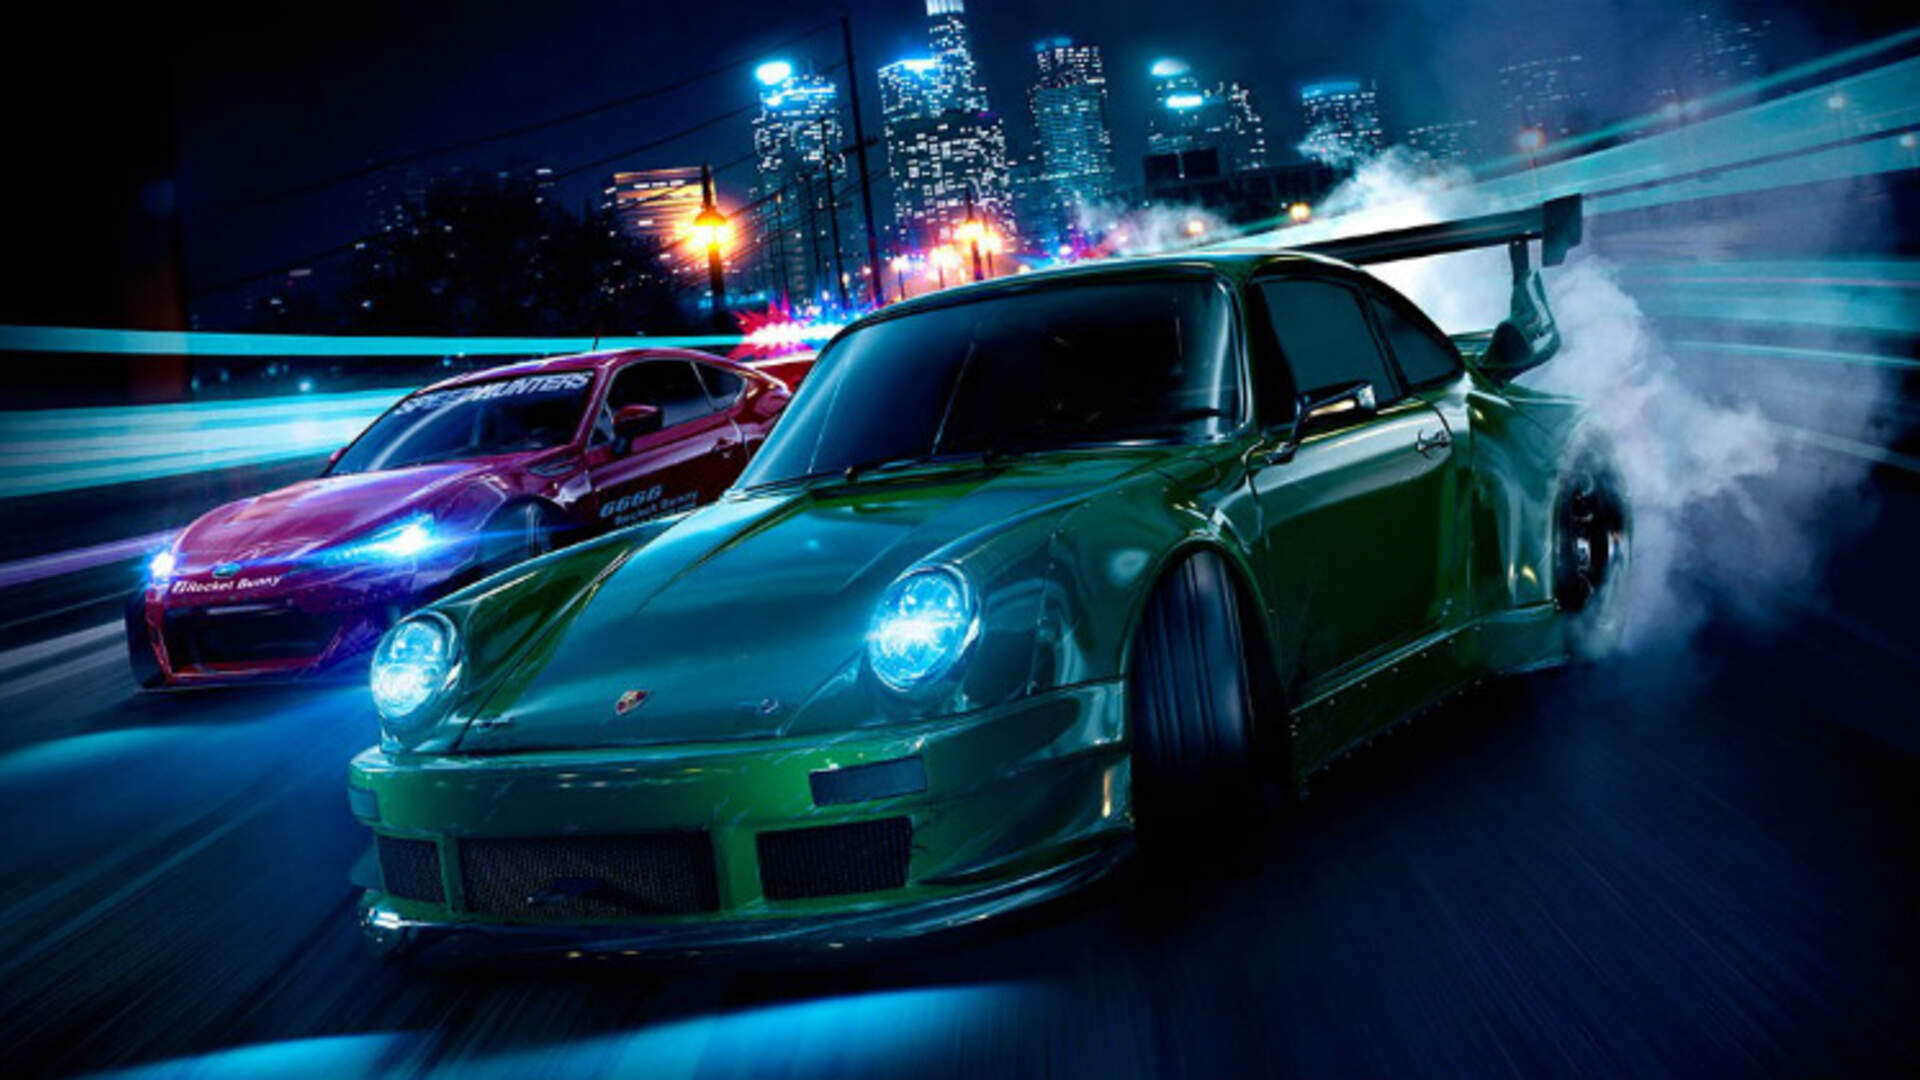 Need For Speed Isn't Dead Yet, New Game Coming By March 2018